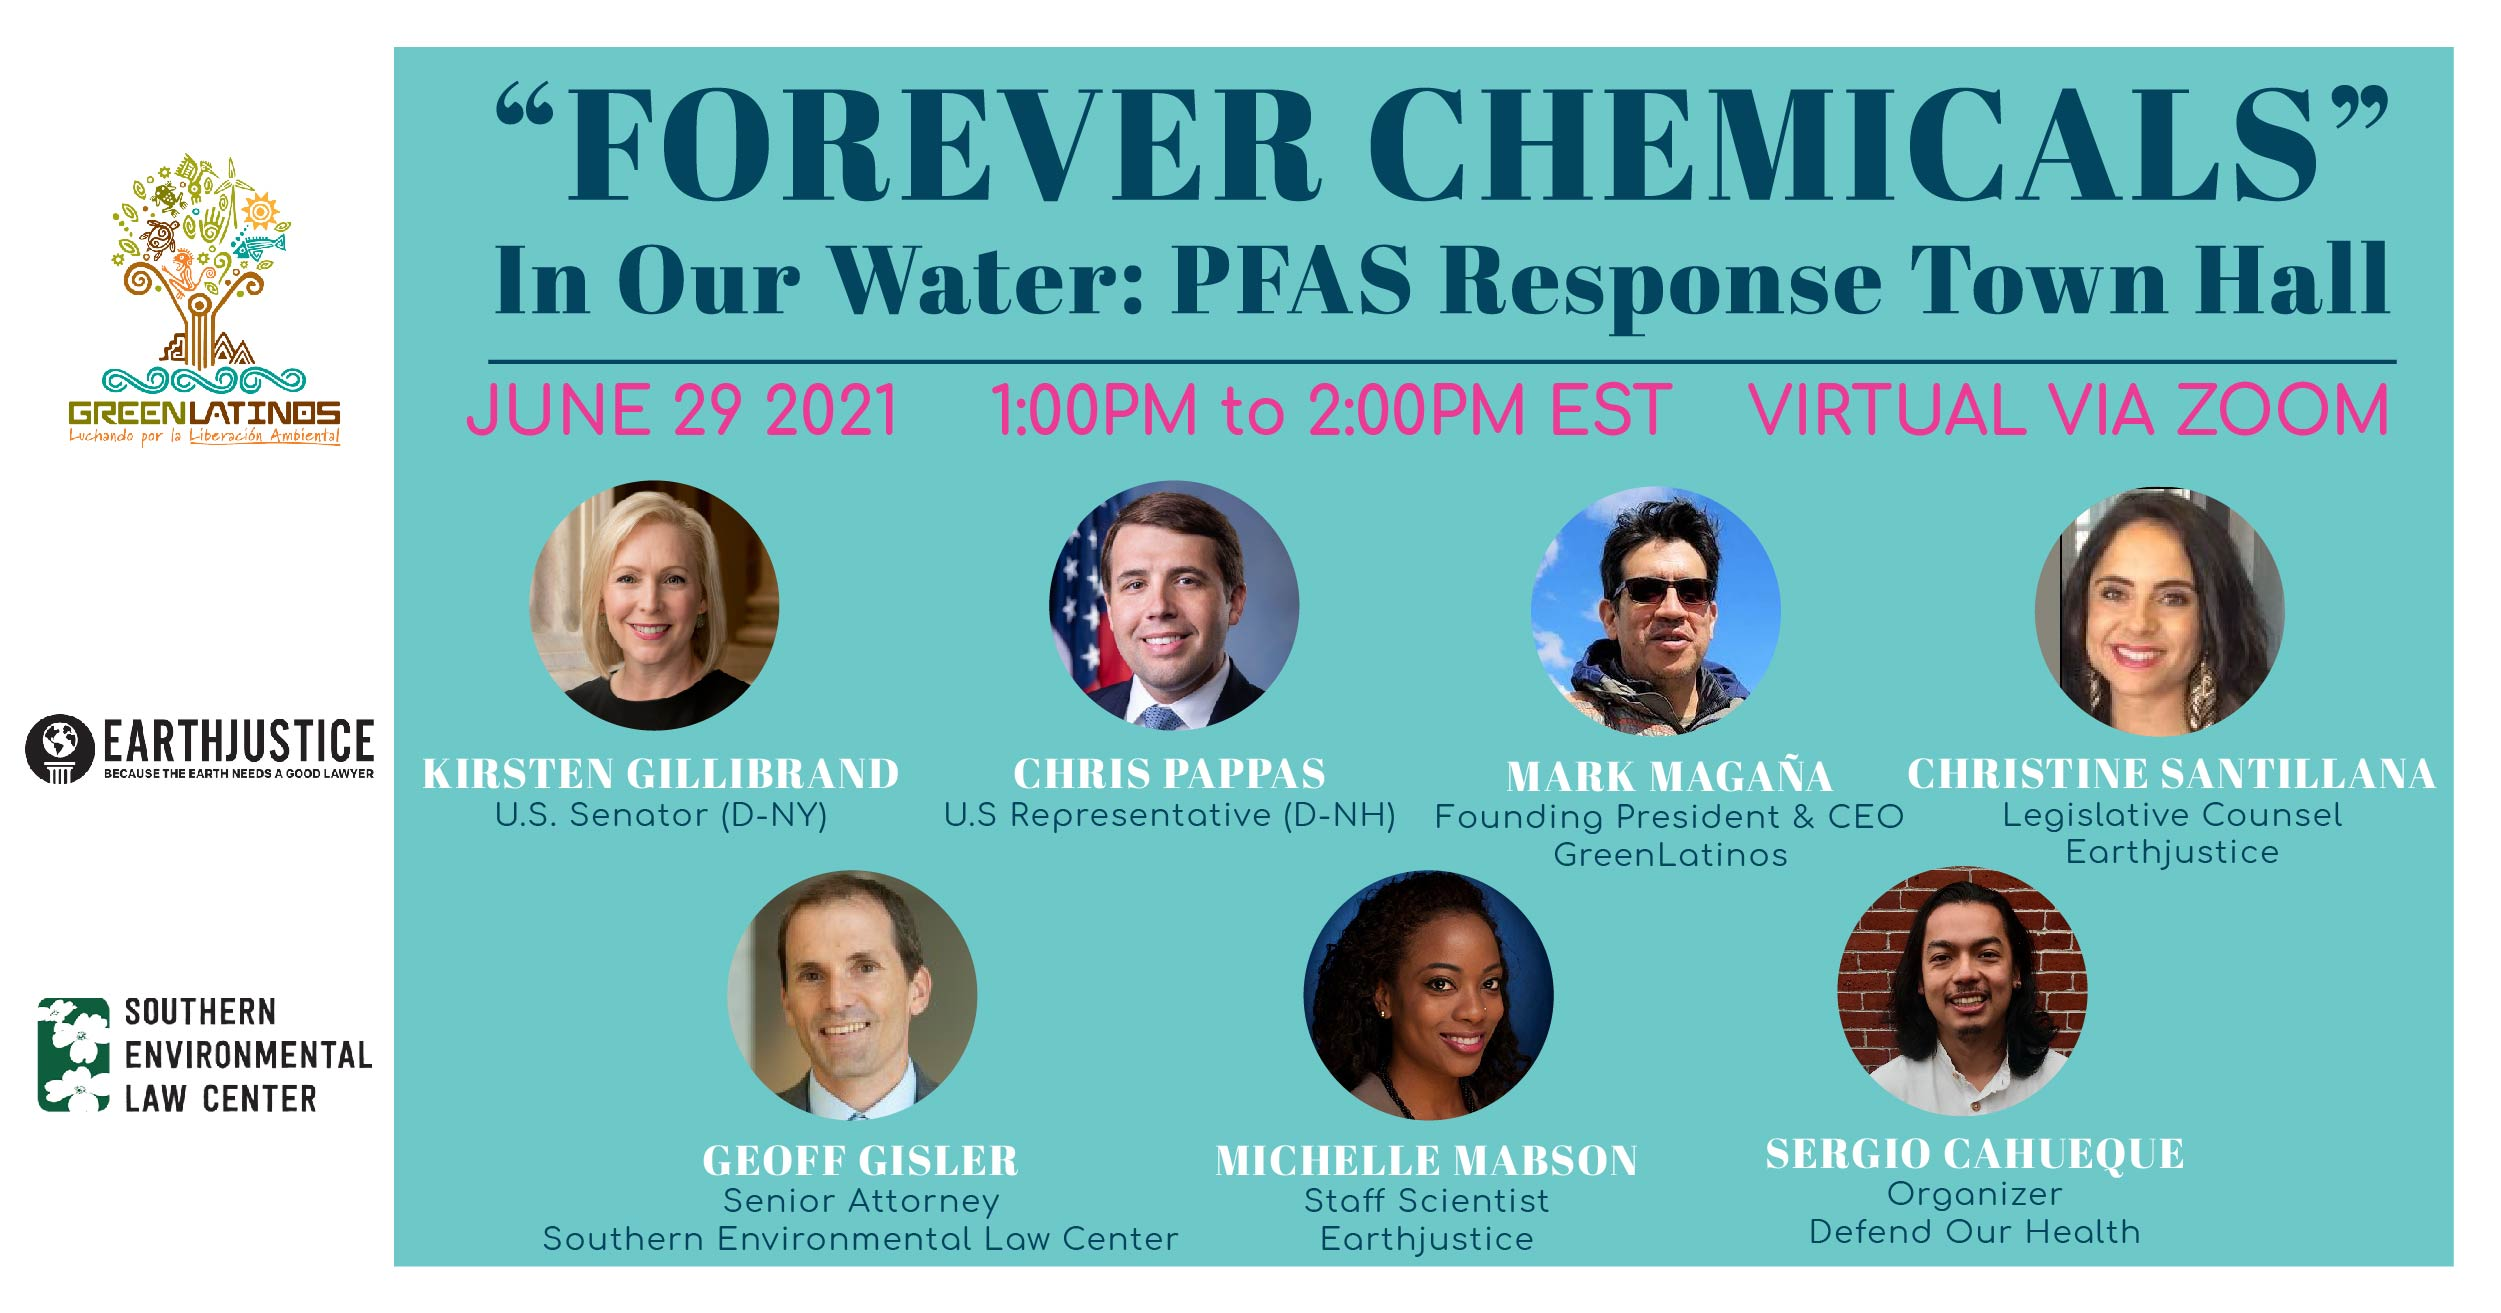 Speakers for the event set for Tuesday include Rep. Chris Pappas, D-N.H., and Sen. Kristen Gillibrand, D-N.Y.